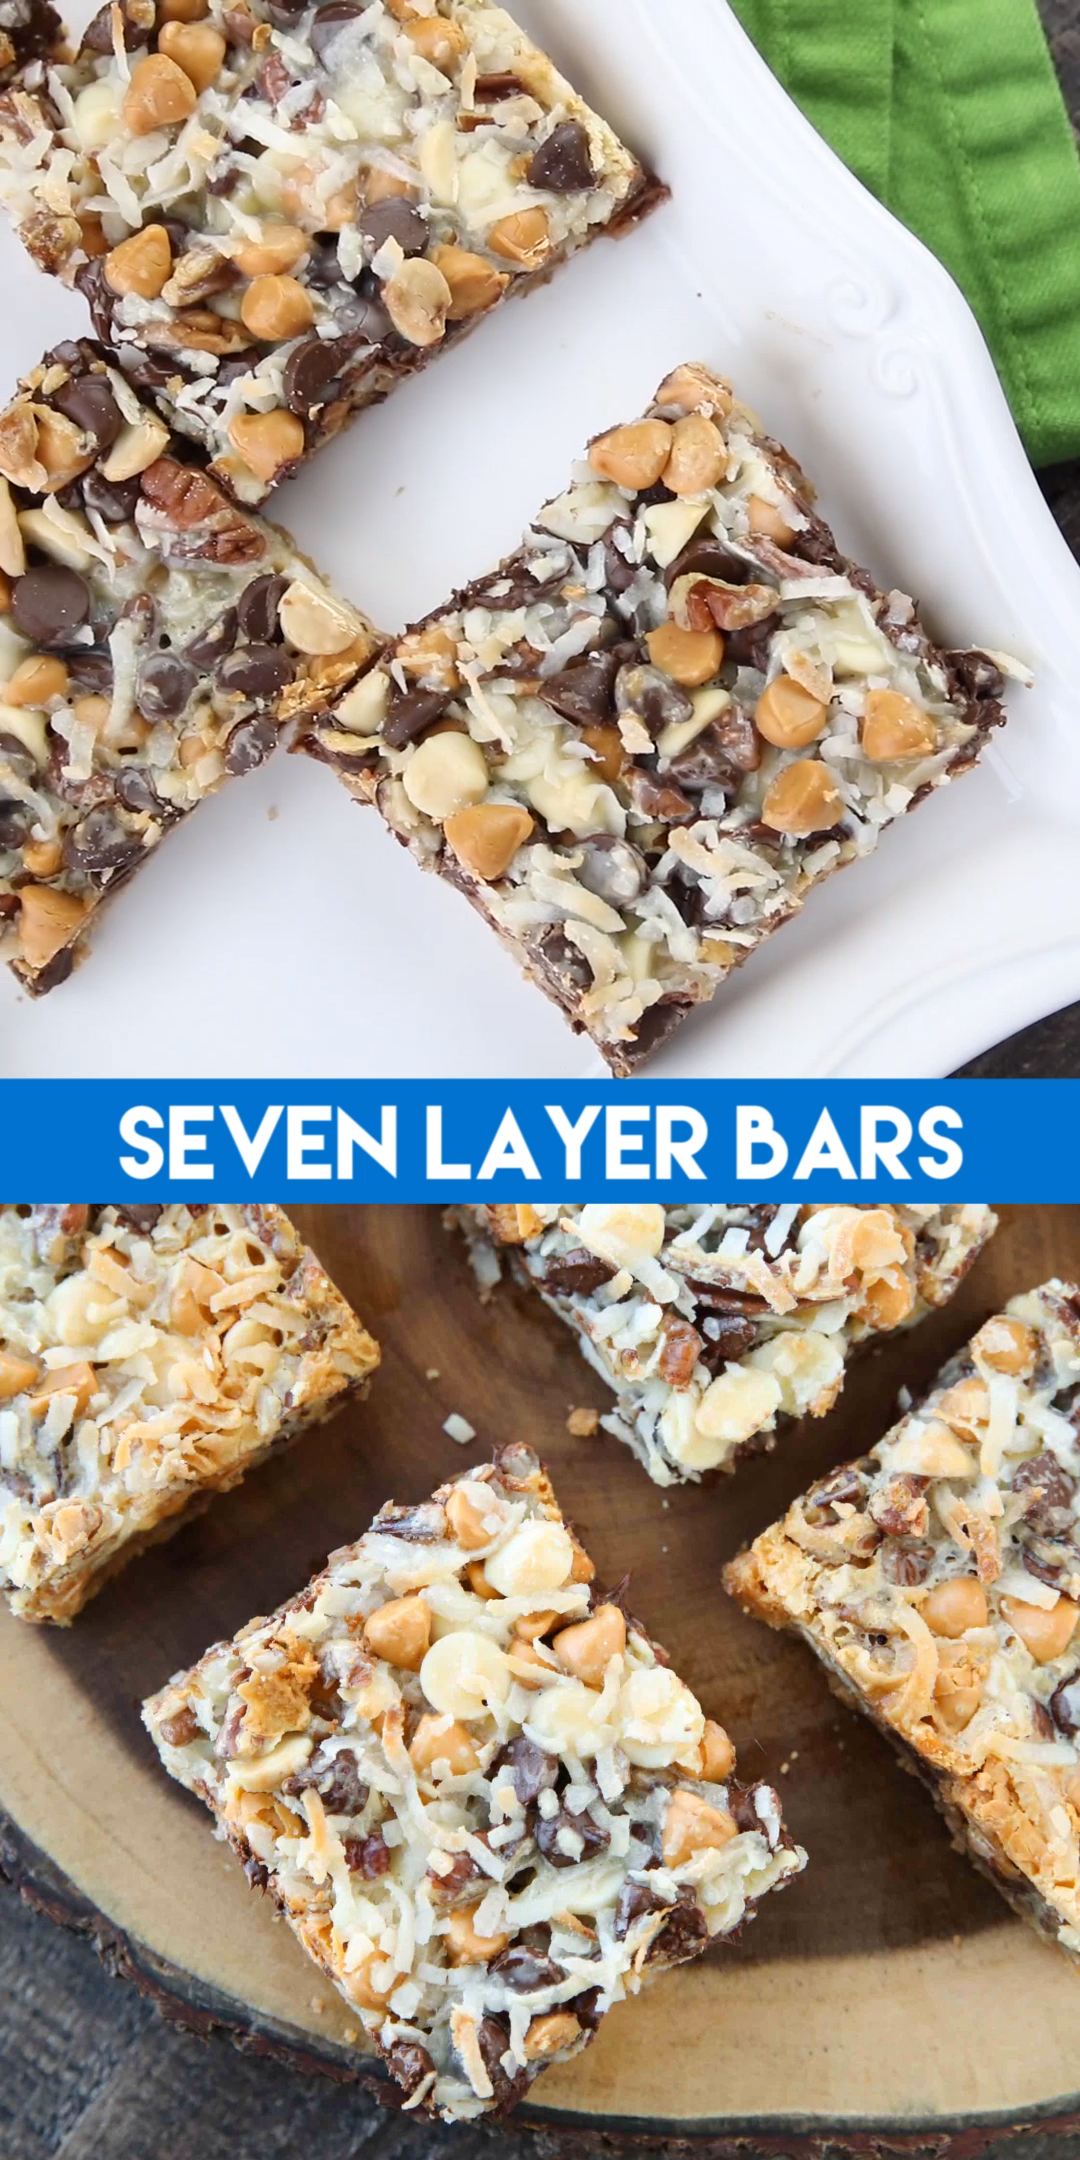 Seven Layer Bars, magic cookie bars, kitchen sink bars, hello dolly bars, whatever you call them, this classic dessert is easy and delicious. A graham cracker crust, chocolate, white chocolate, and butterscotch chips, nuts, and shredded coconut are melded together with sweetened condensed milk.